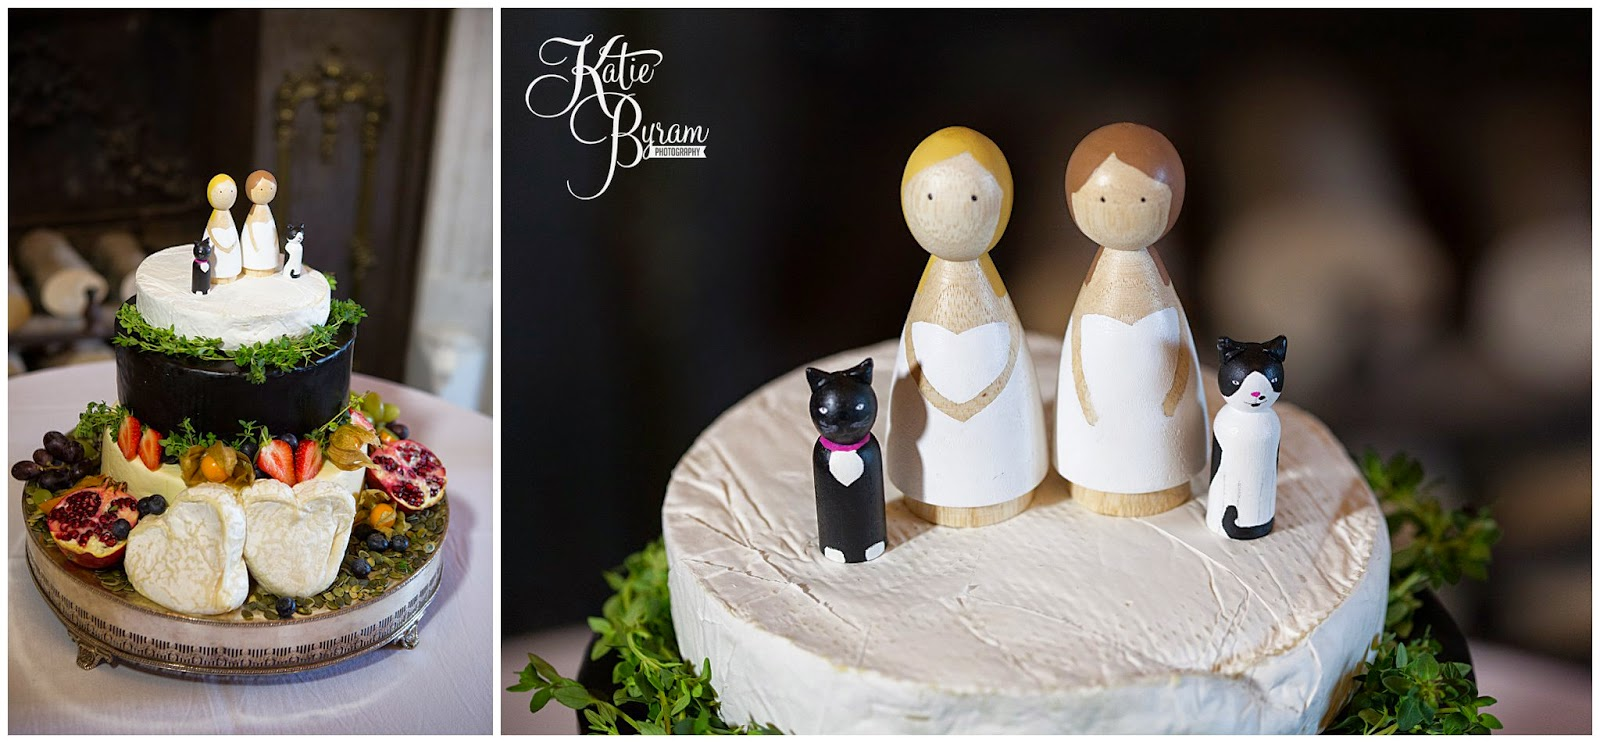 churchmouse cheese, cheese wedding cake, wooden cake toppers, matfen hall wedding, matfen hall, northumberland wedding, newcastle united wedding, lesbian wedding, two bride wedding, lgbt wedding, gay wedding, civil partnership, powder and pin ups make up, katie byram photography, bride and bride, two weddiing dresses, mao couture bridal, jean hepple florist,